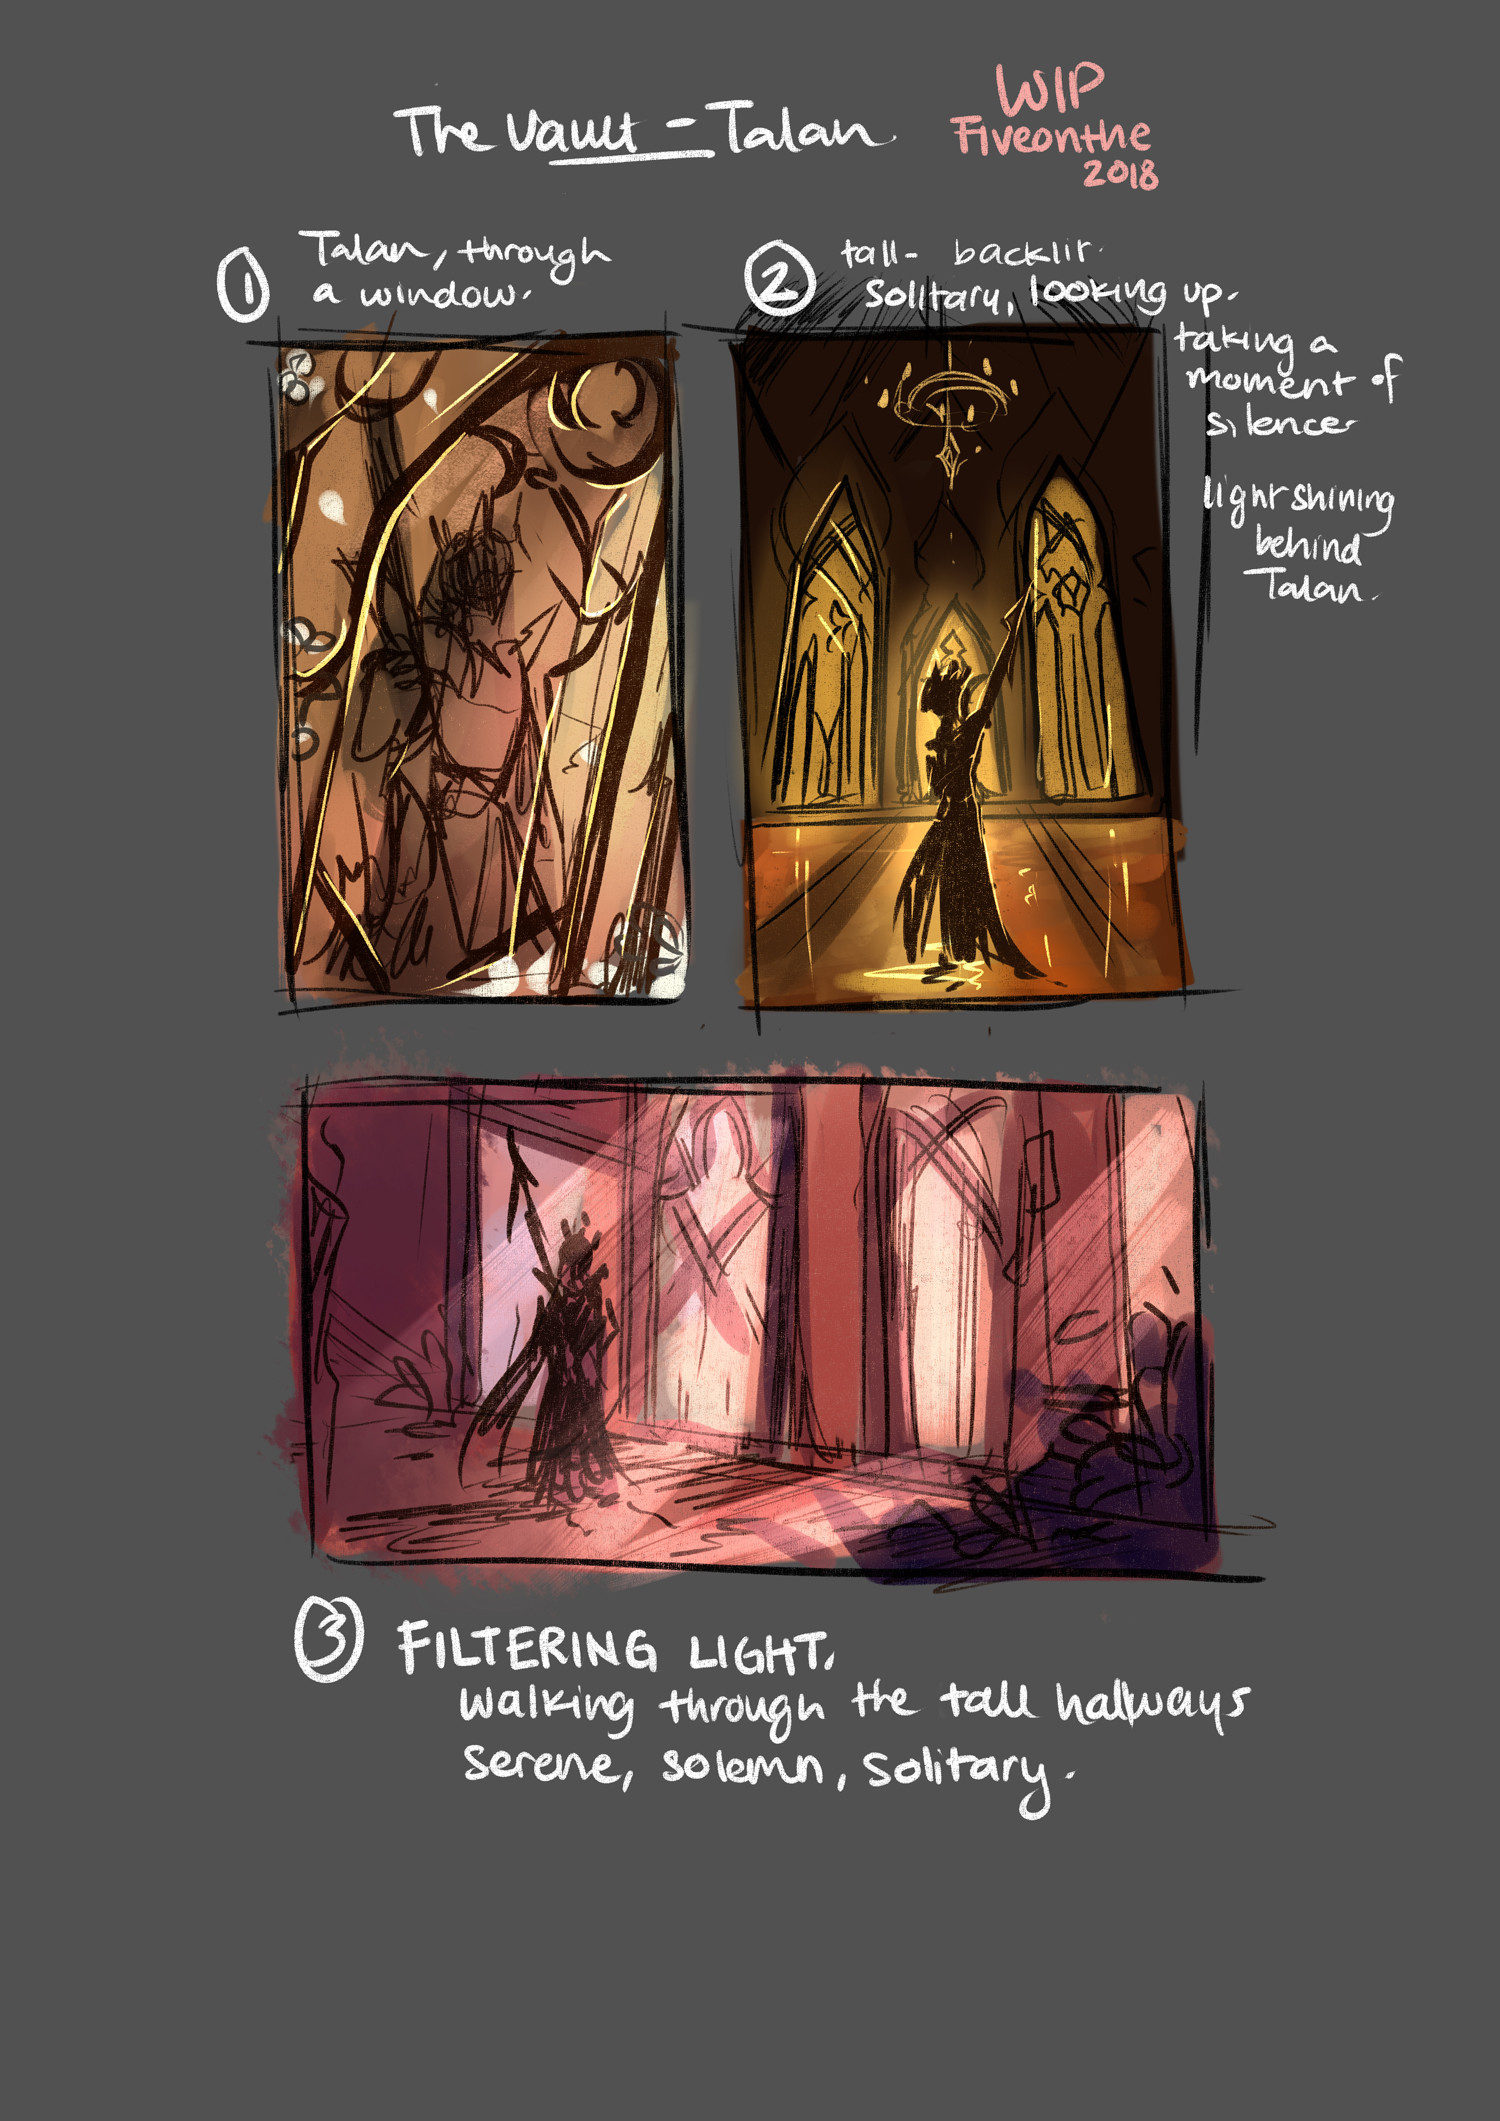 Joelin tan talan vault sketches